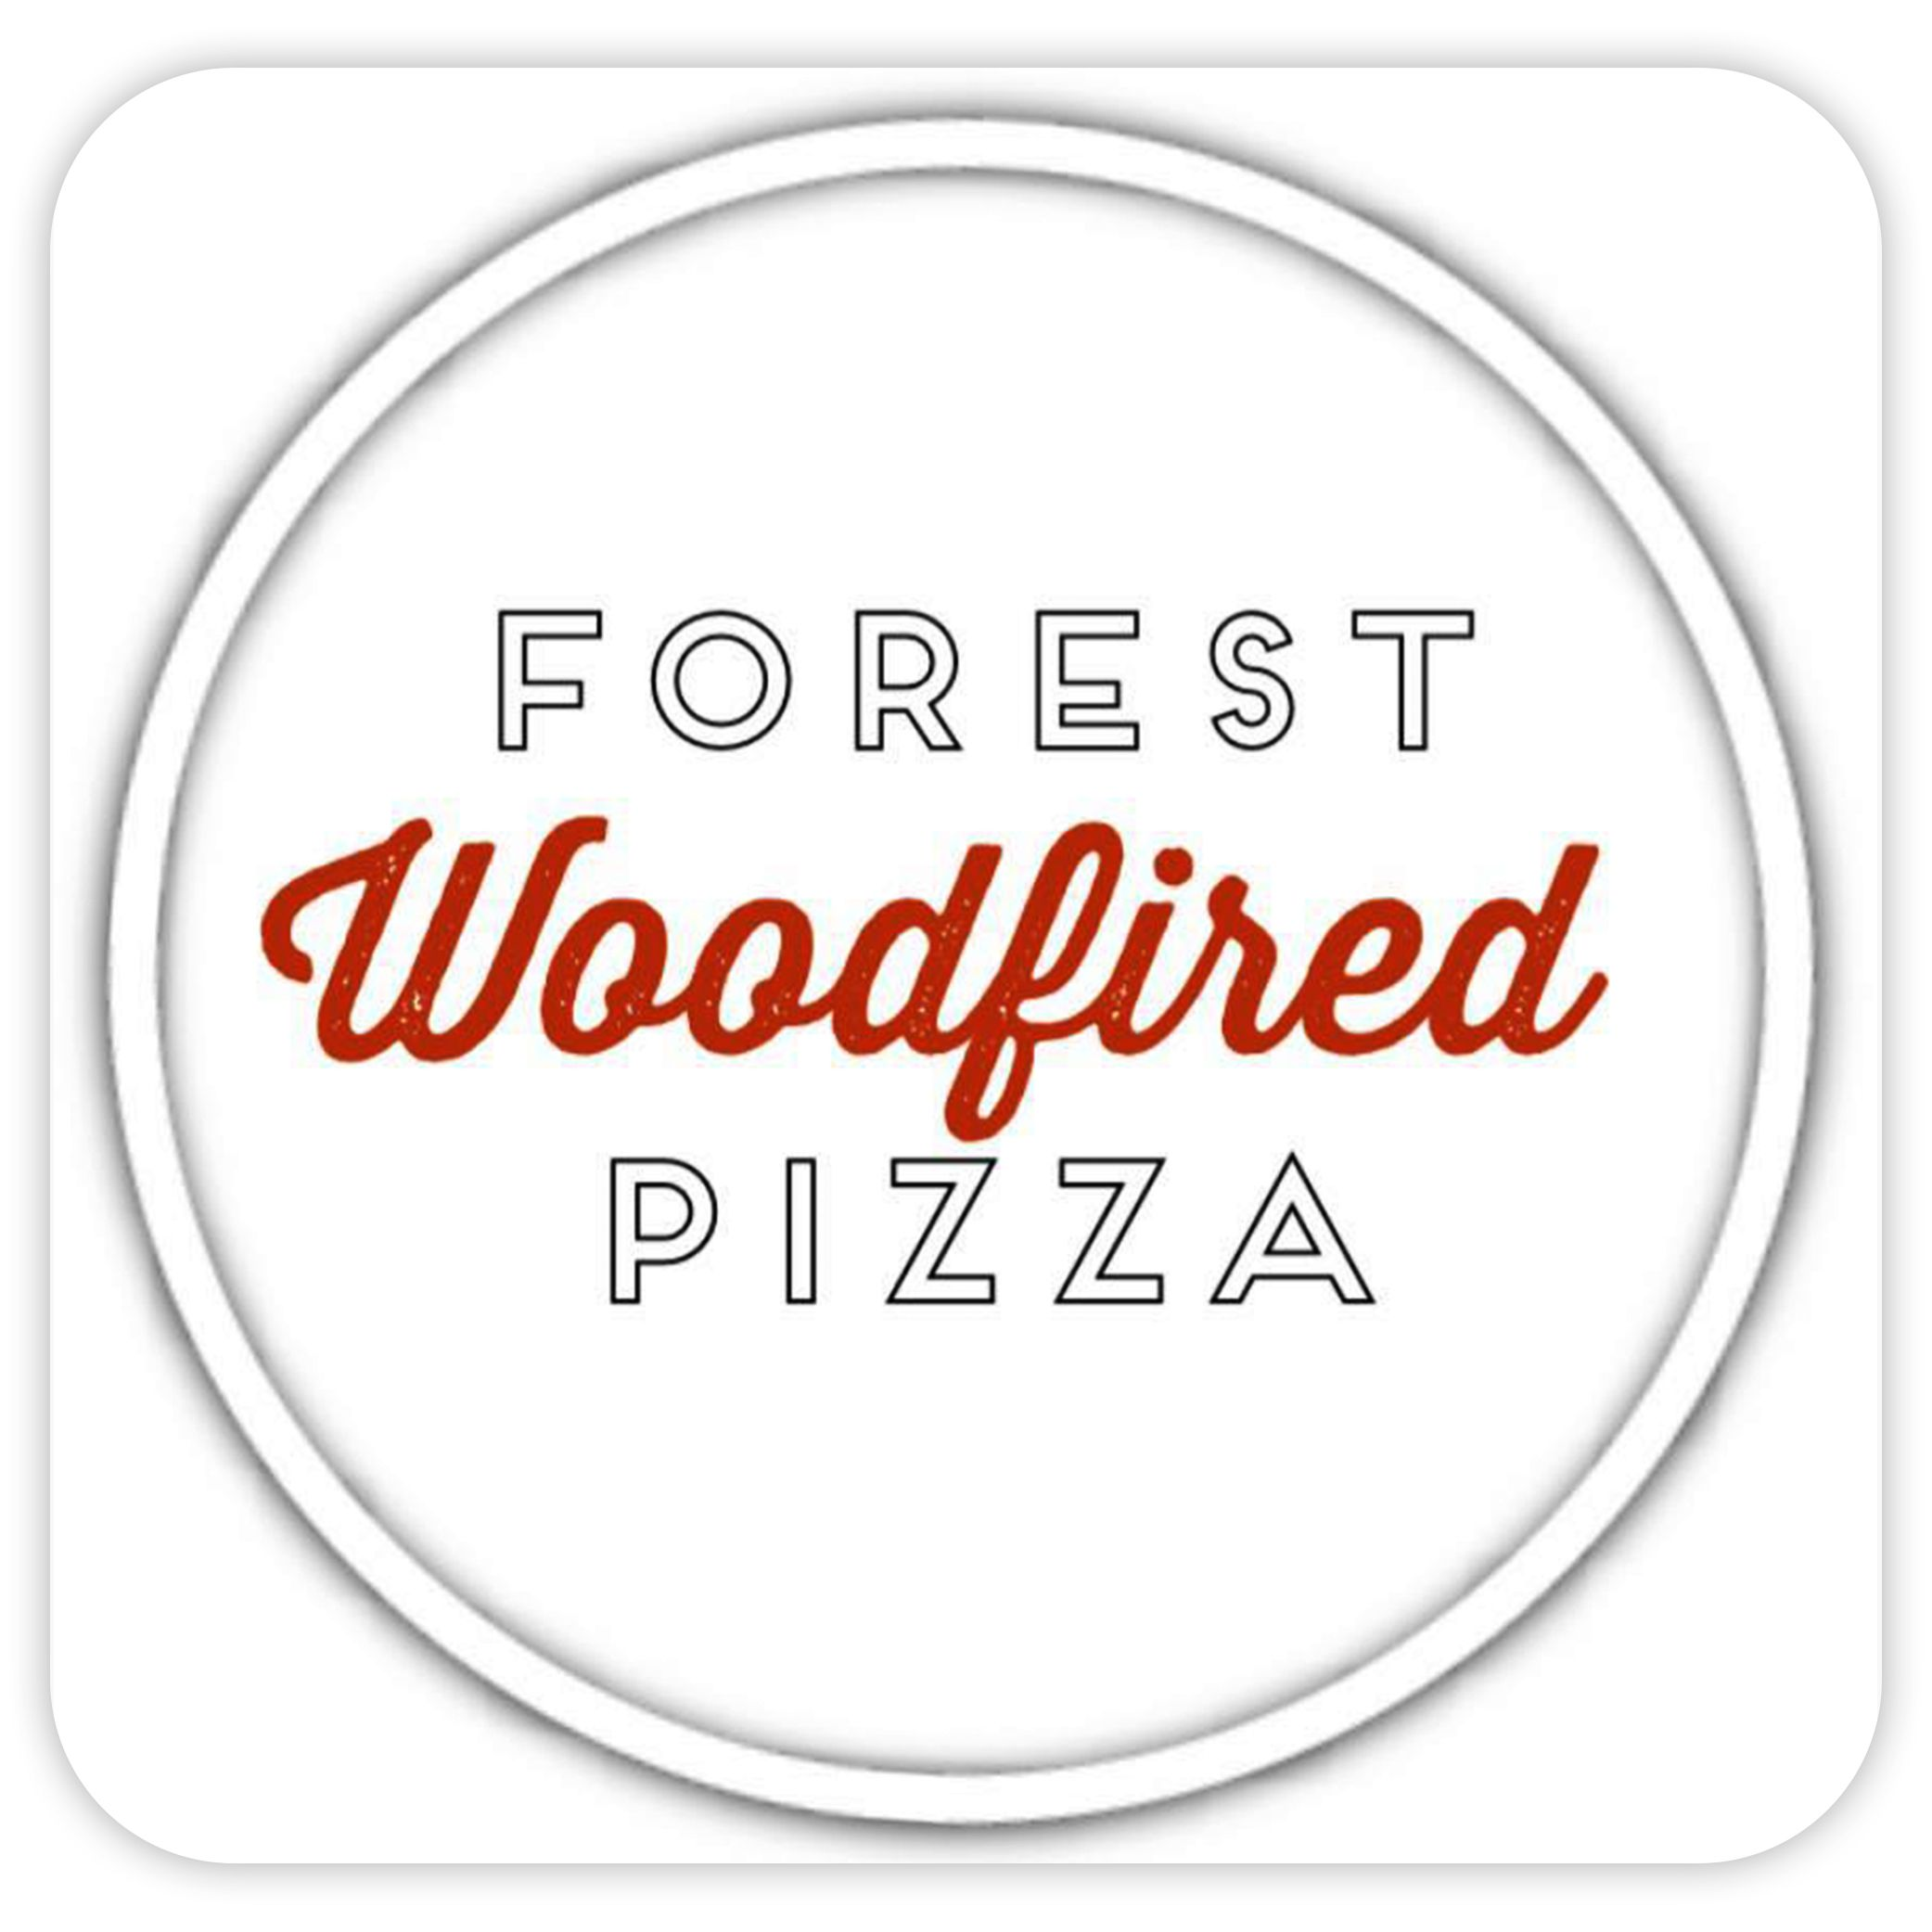 Forest Wood Fired Pizza